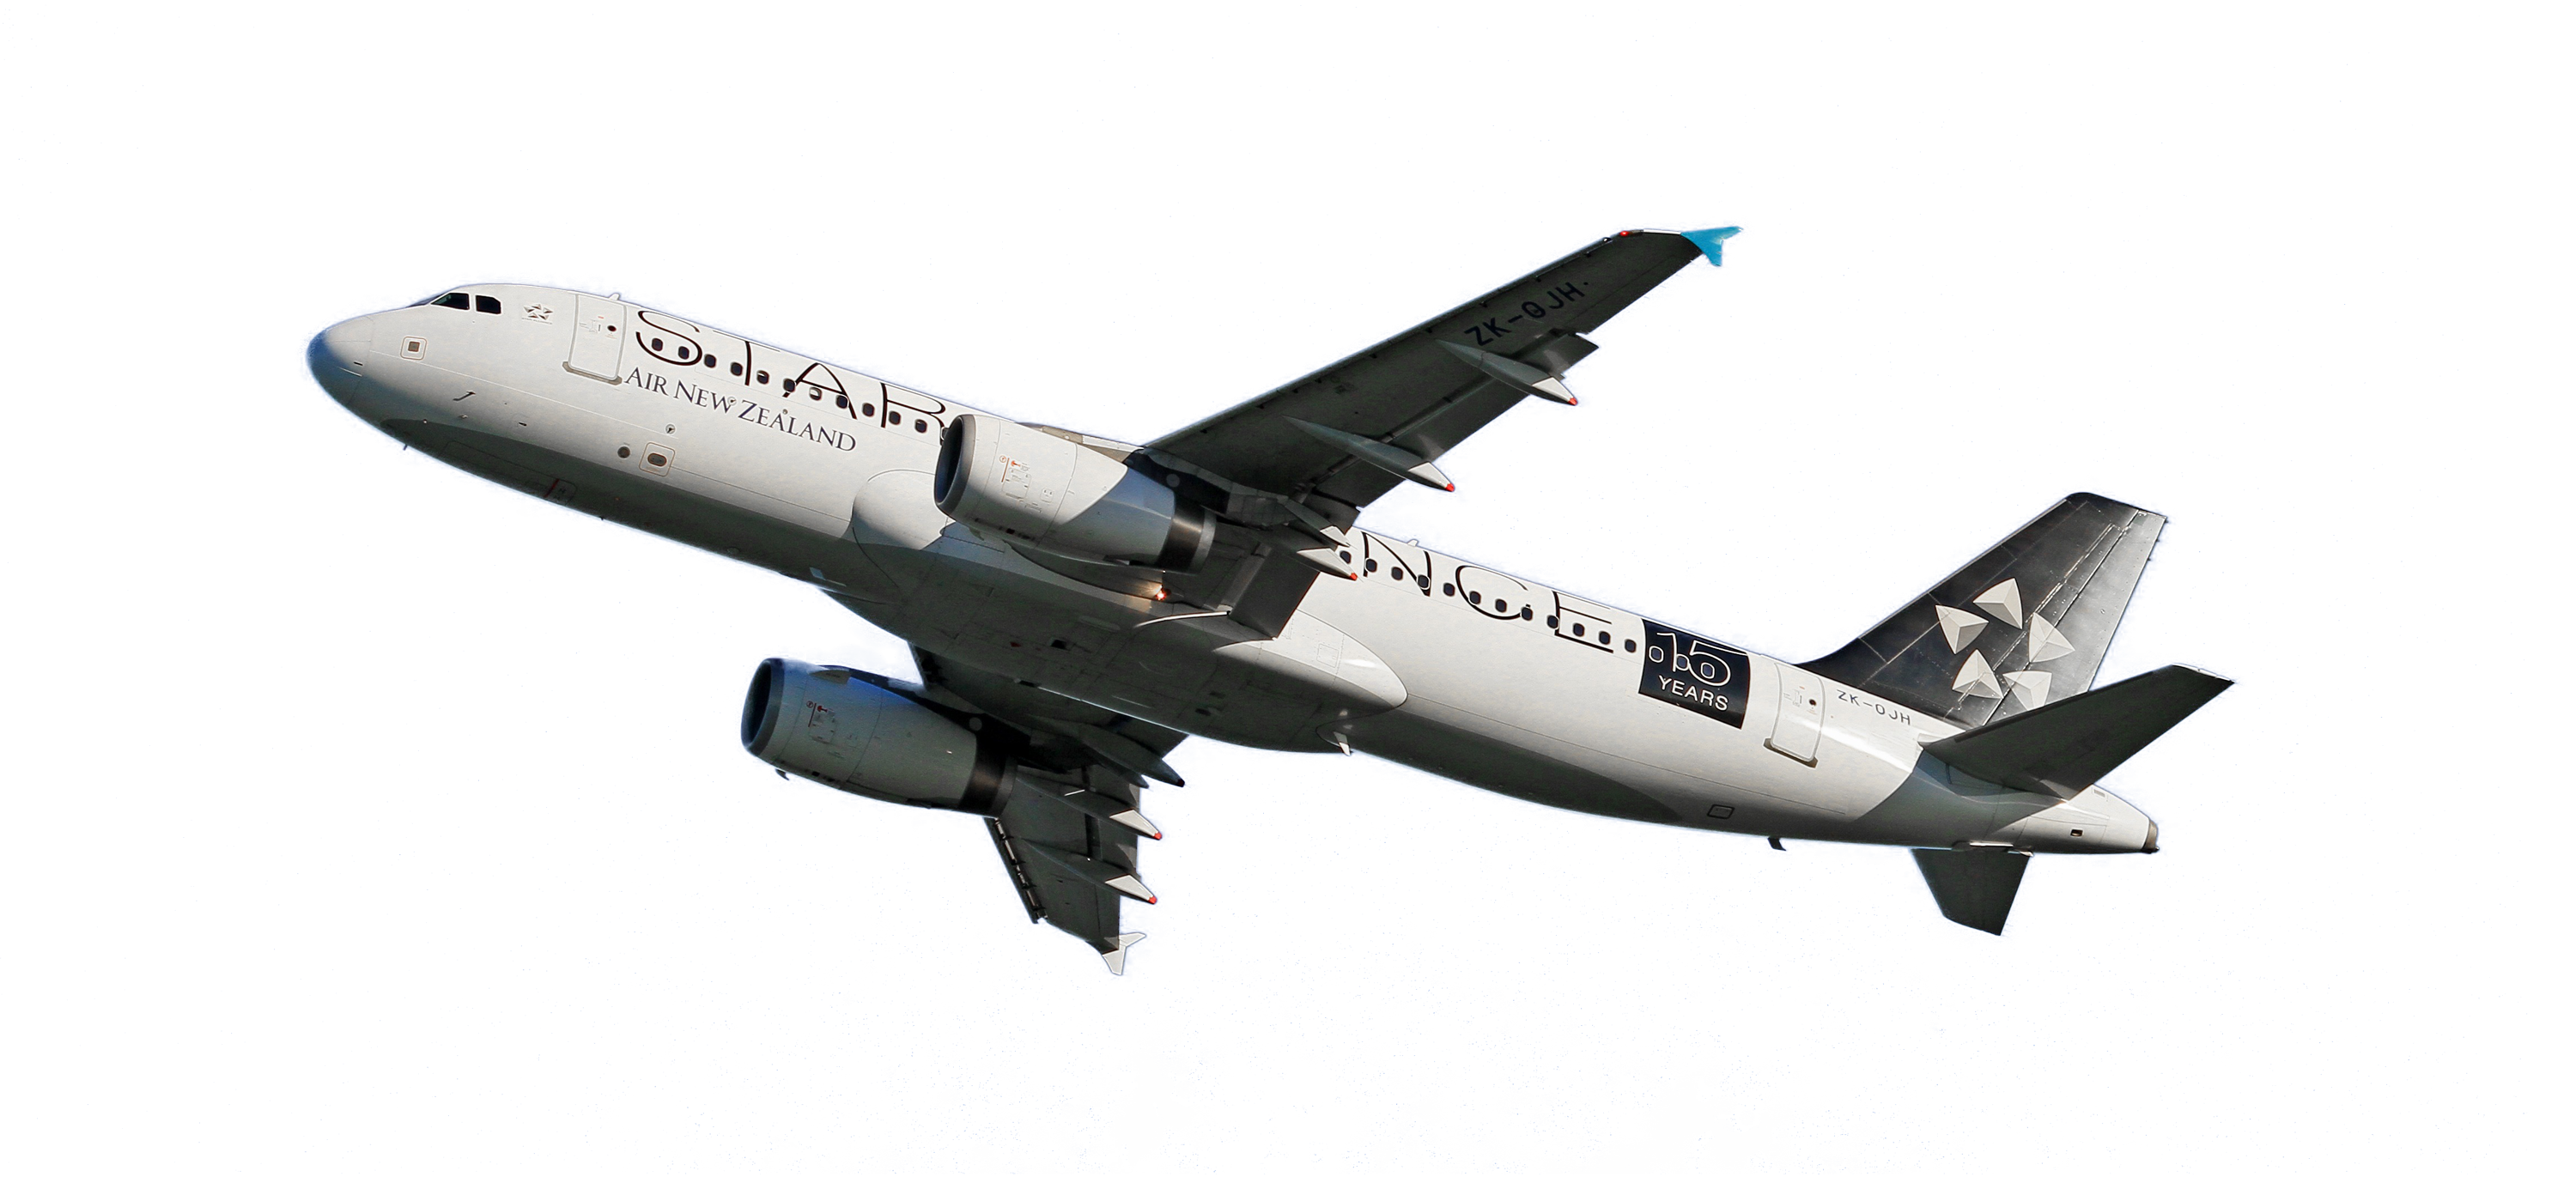 Download Passenger Airplane Png Image For Free